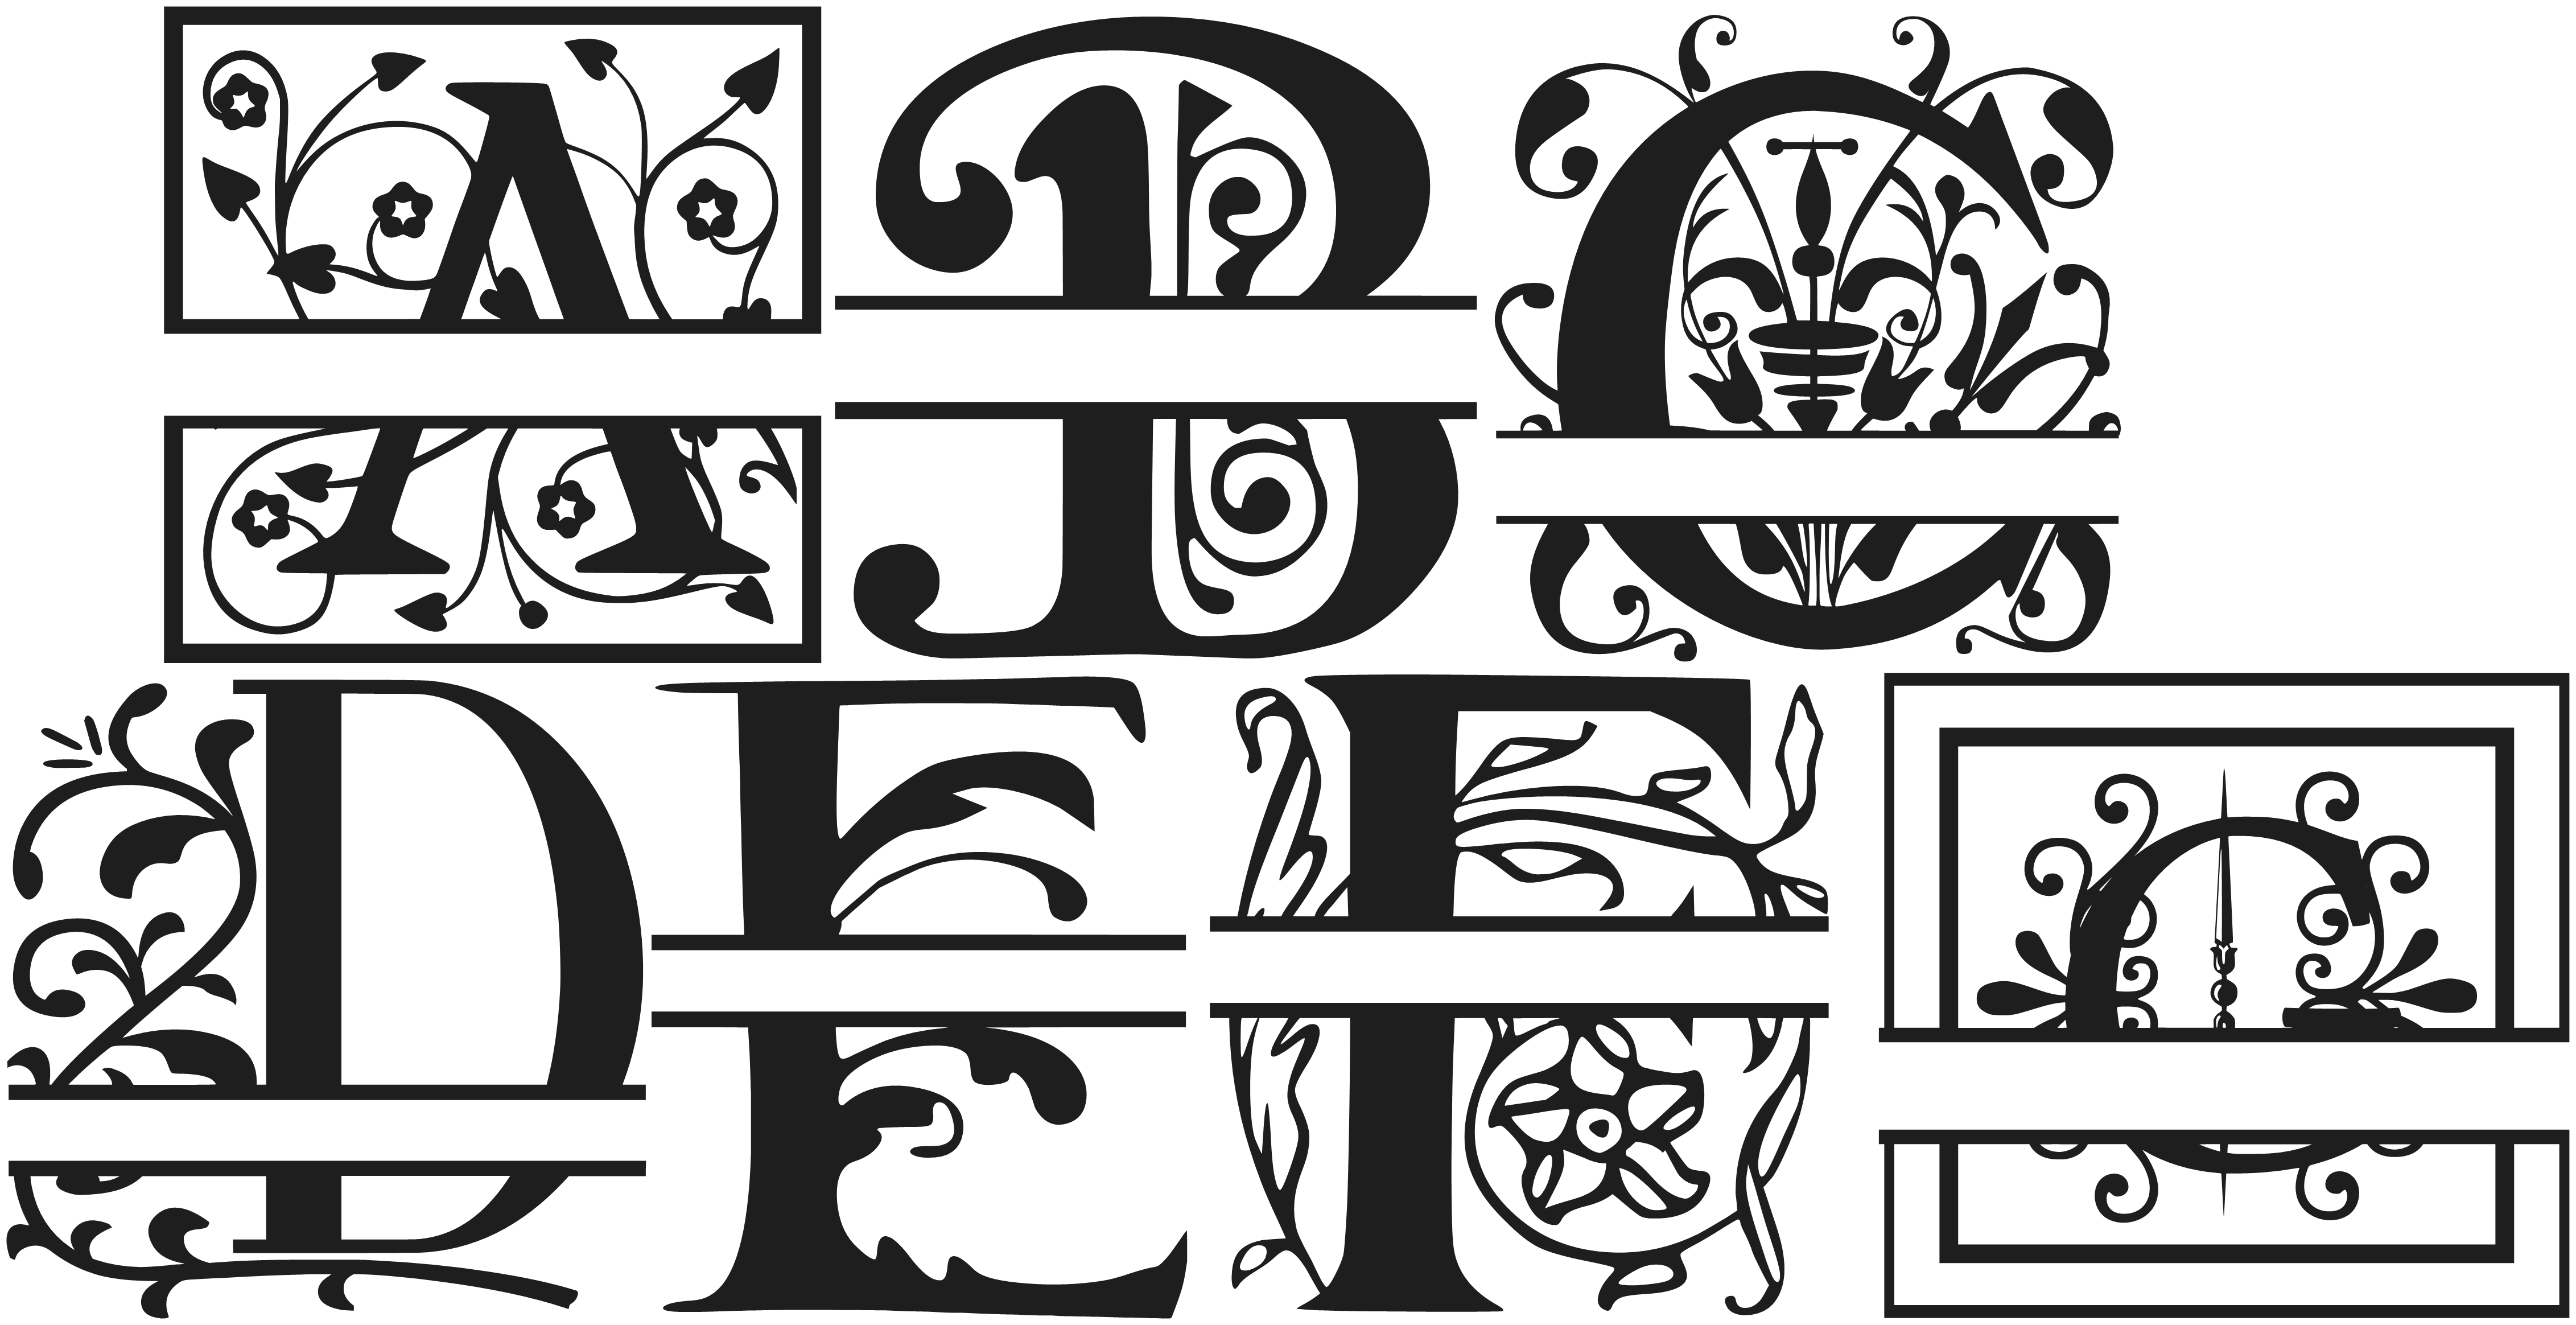 Download 15 Free SVG Fonts Images - Free Wood Type Font Vector ...